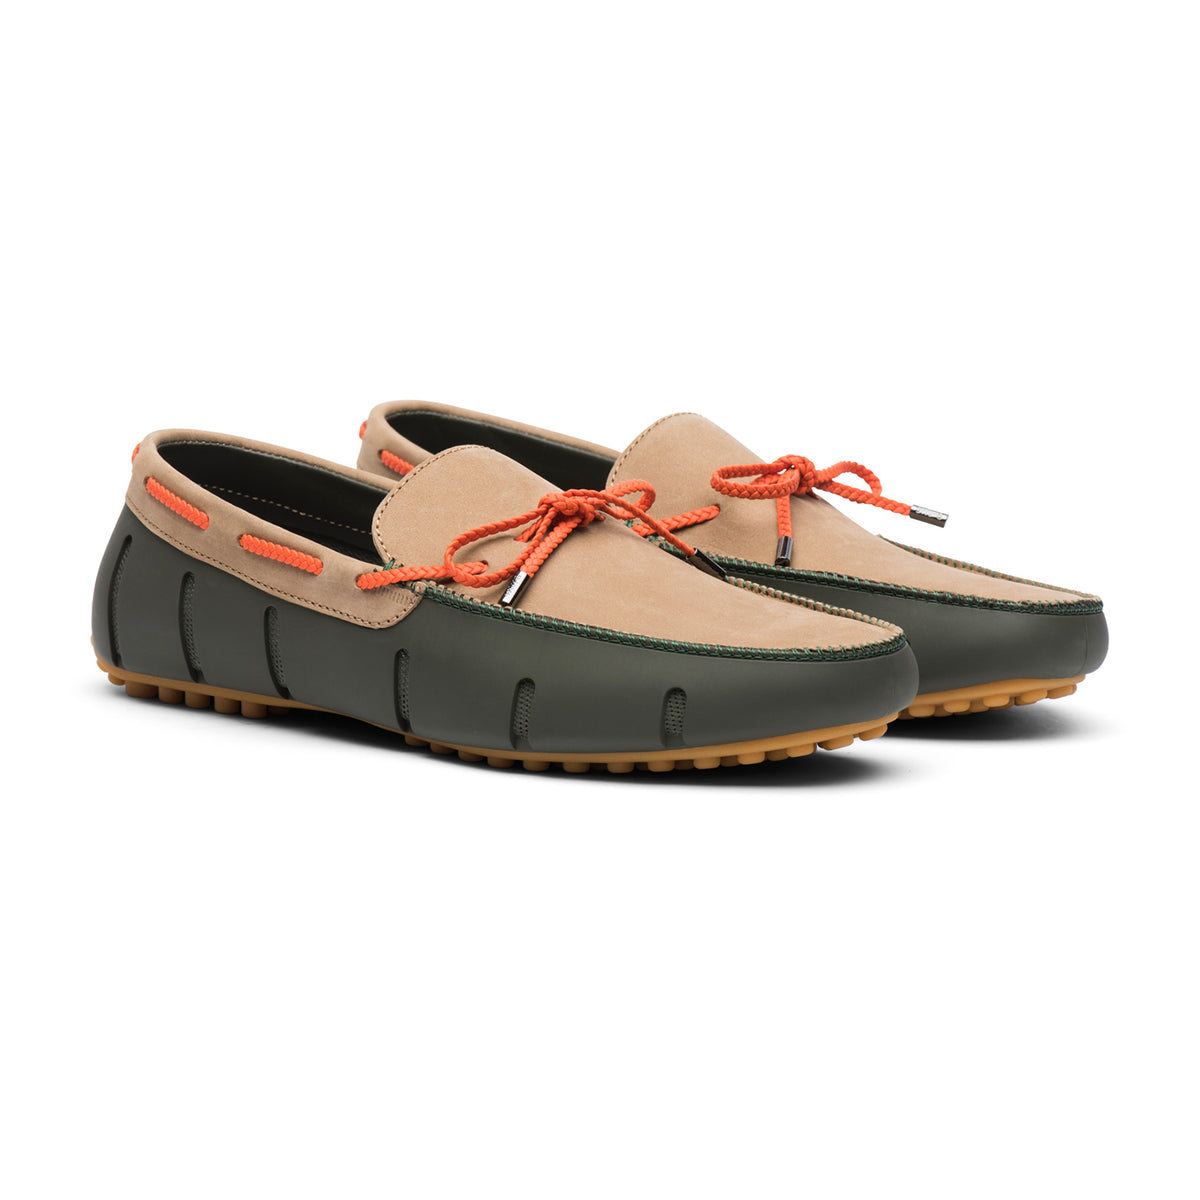 Braided Lace Lux Loafer Driver Nubuck - background::white,variant::Olive/Gaucho/Gum